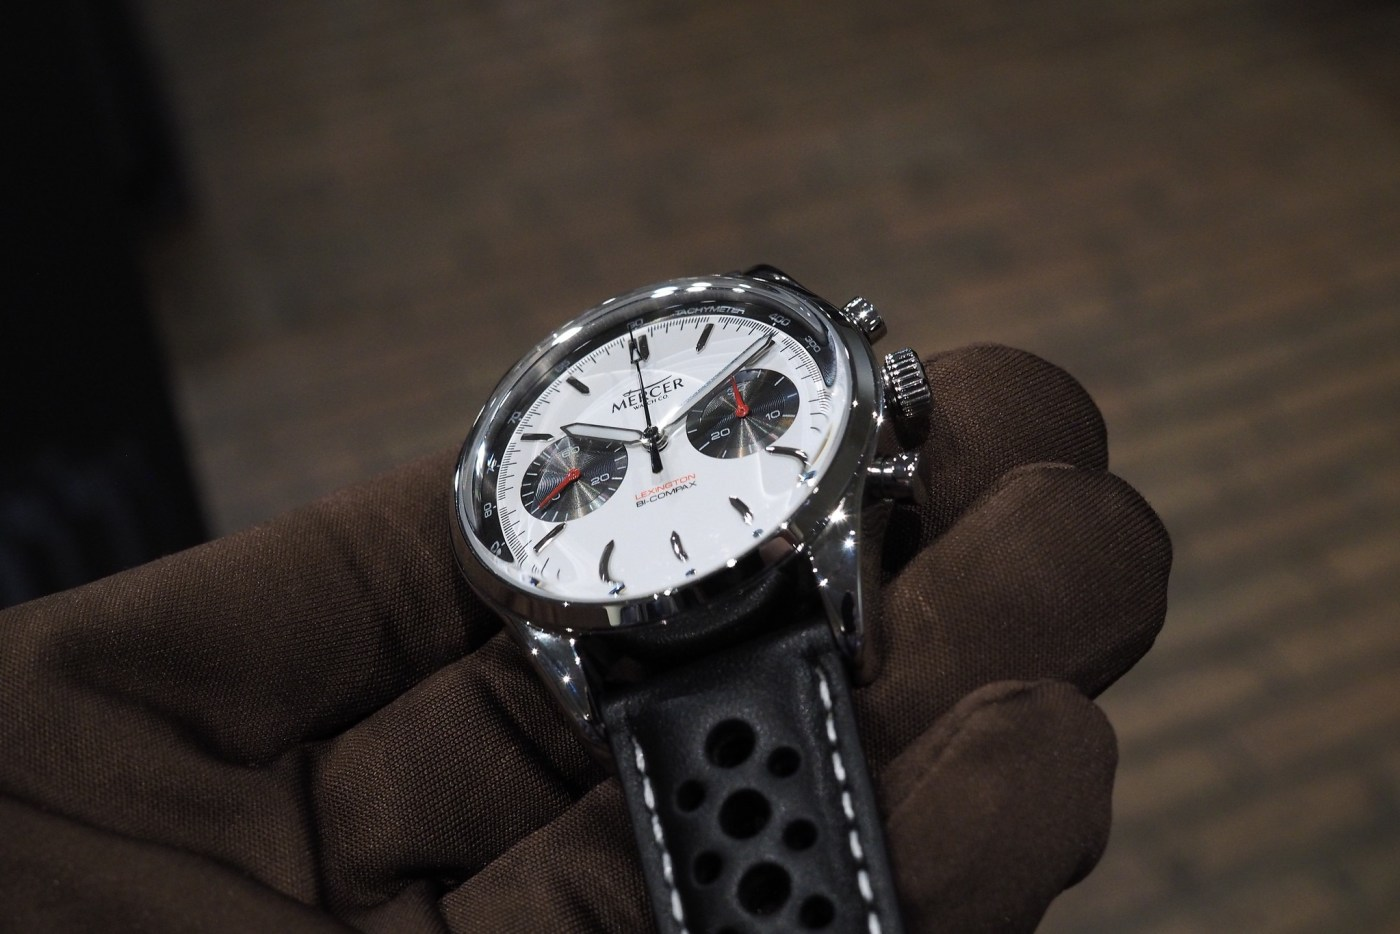 Mercer Watch Co Panda Dial Chronograph